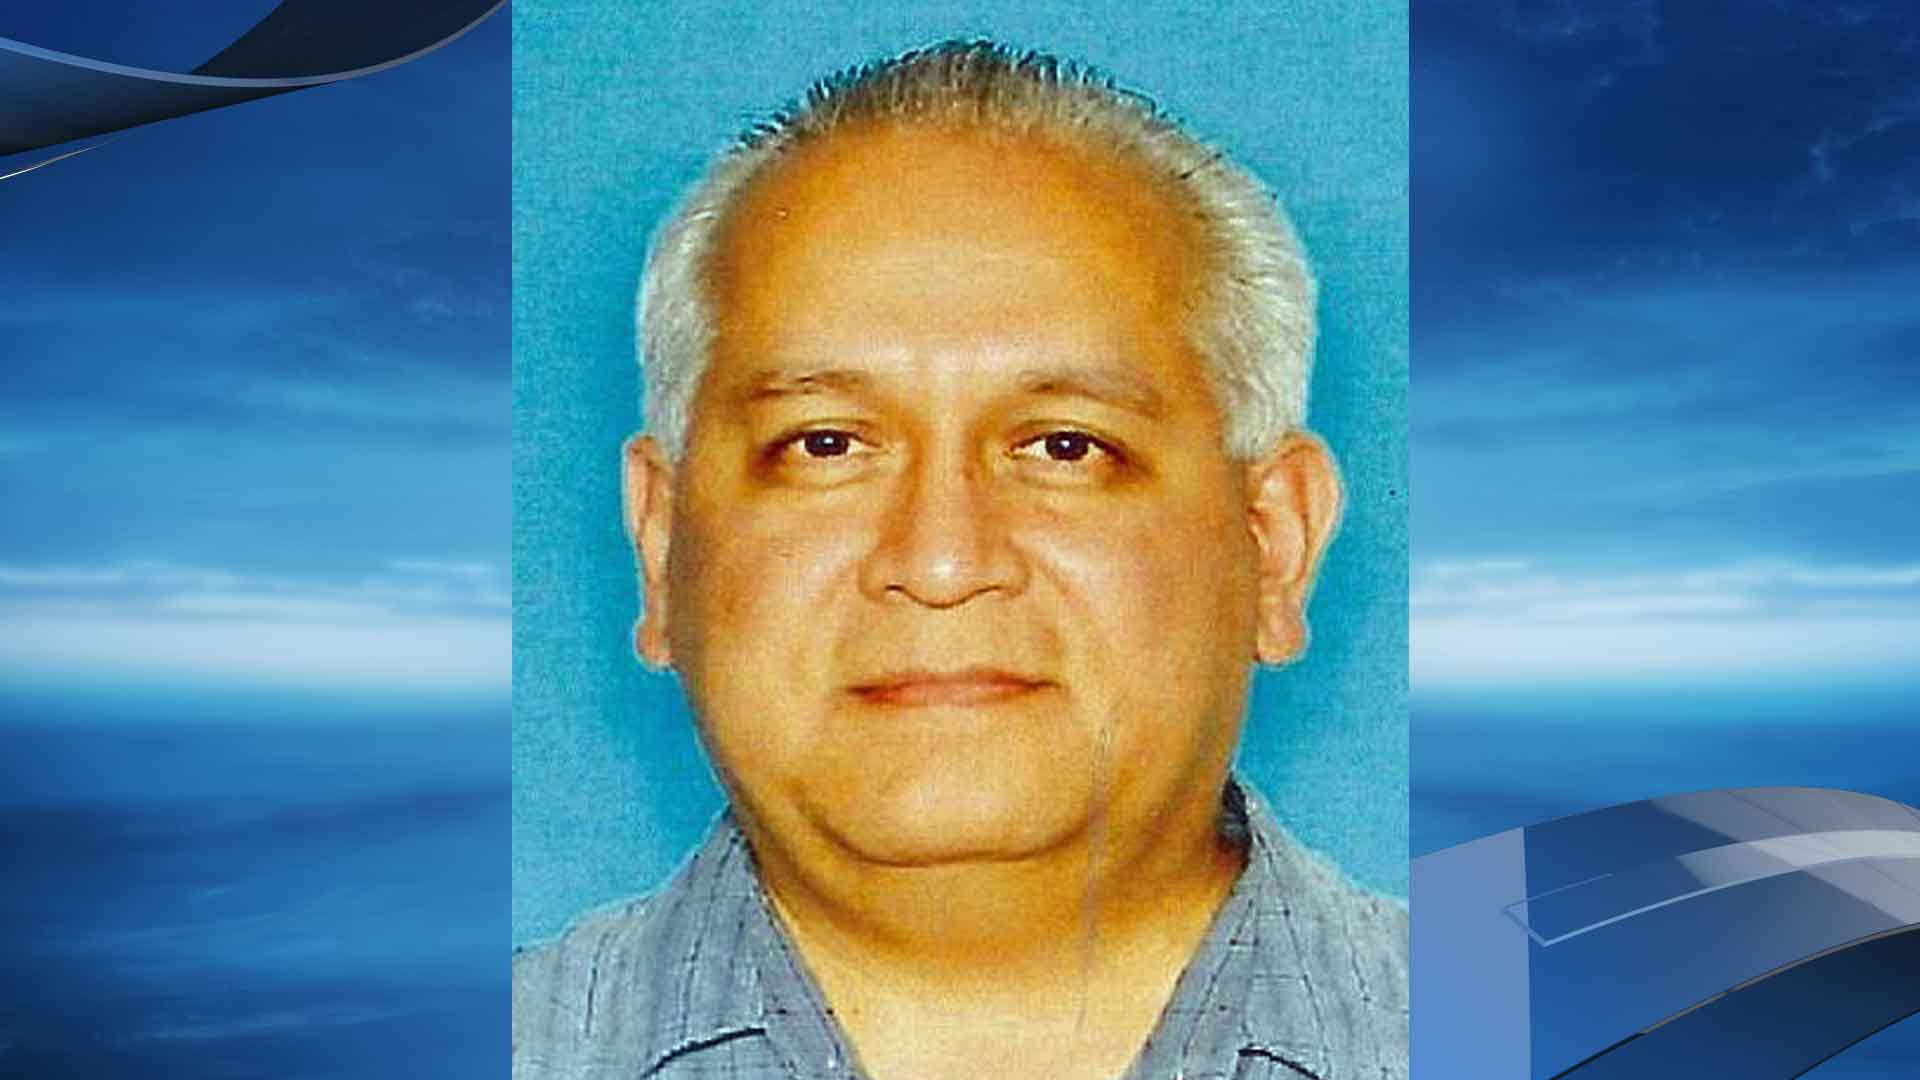 According to the Lone Star Fugitive Task Force, Ruben Garcia, 59, is an associate pastor at Betania Baptist Church, located at 1117 Tillery St. (Photo courtesy: Lone Star Fugitive Task Force)